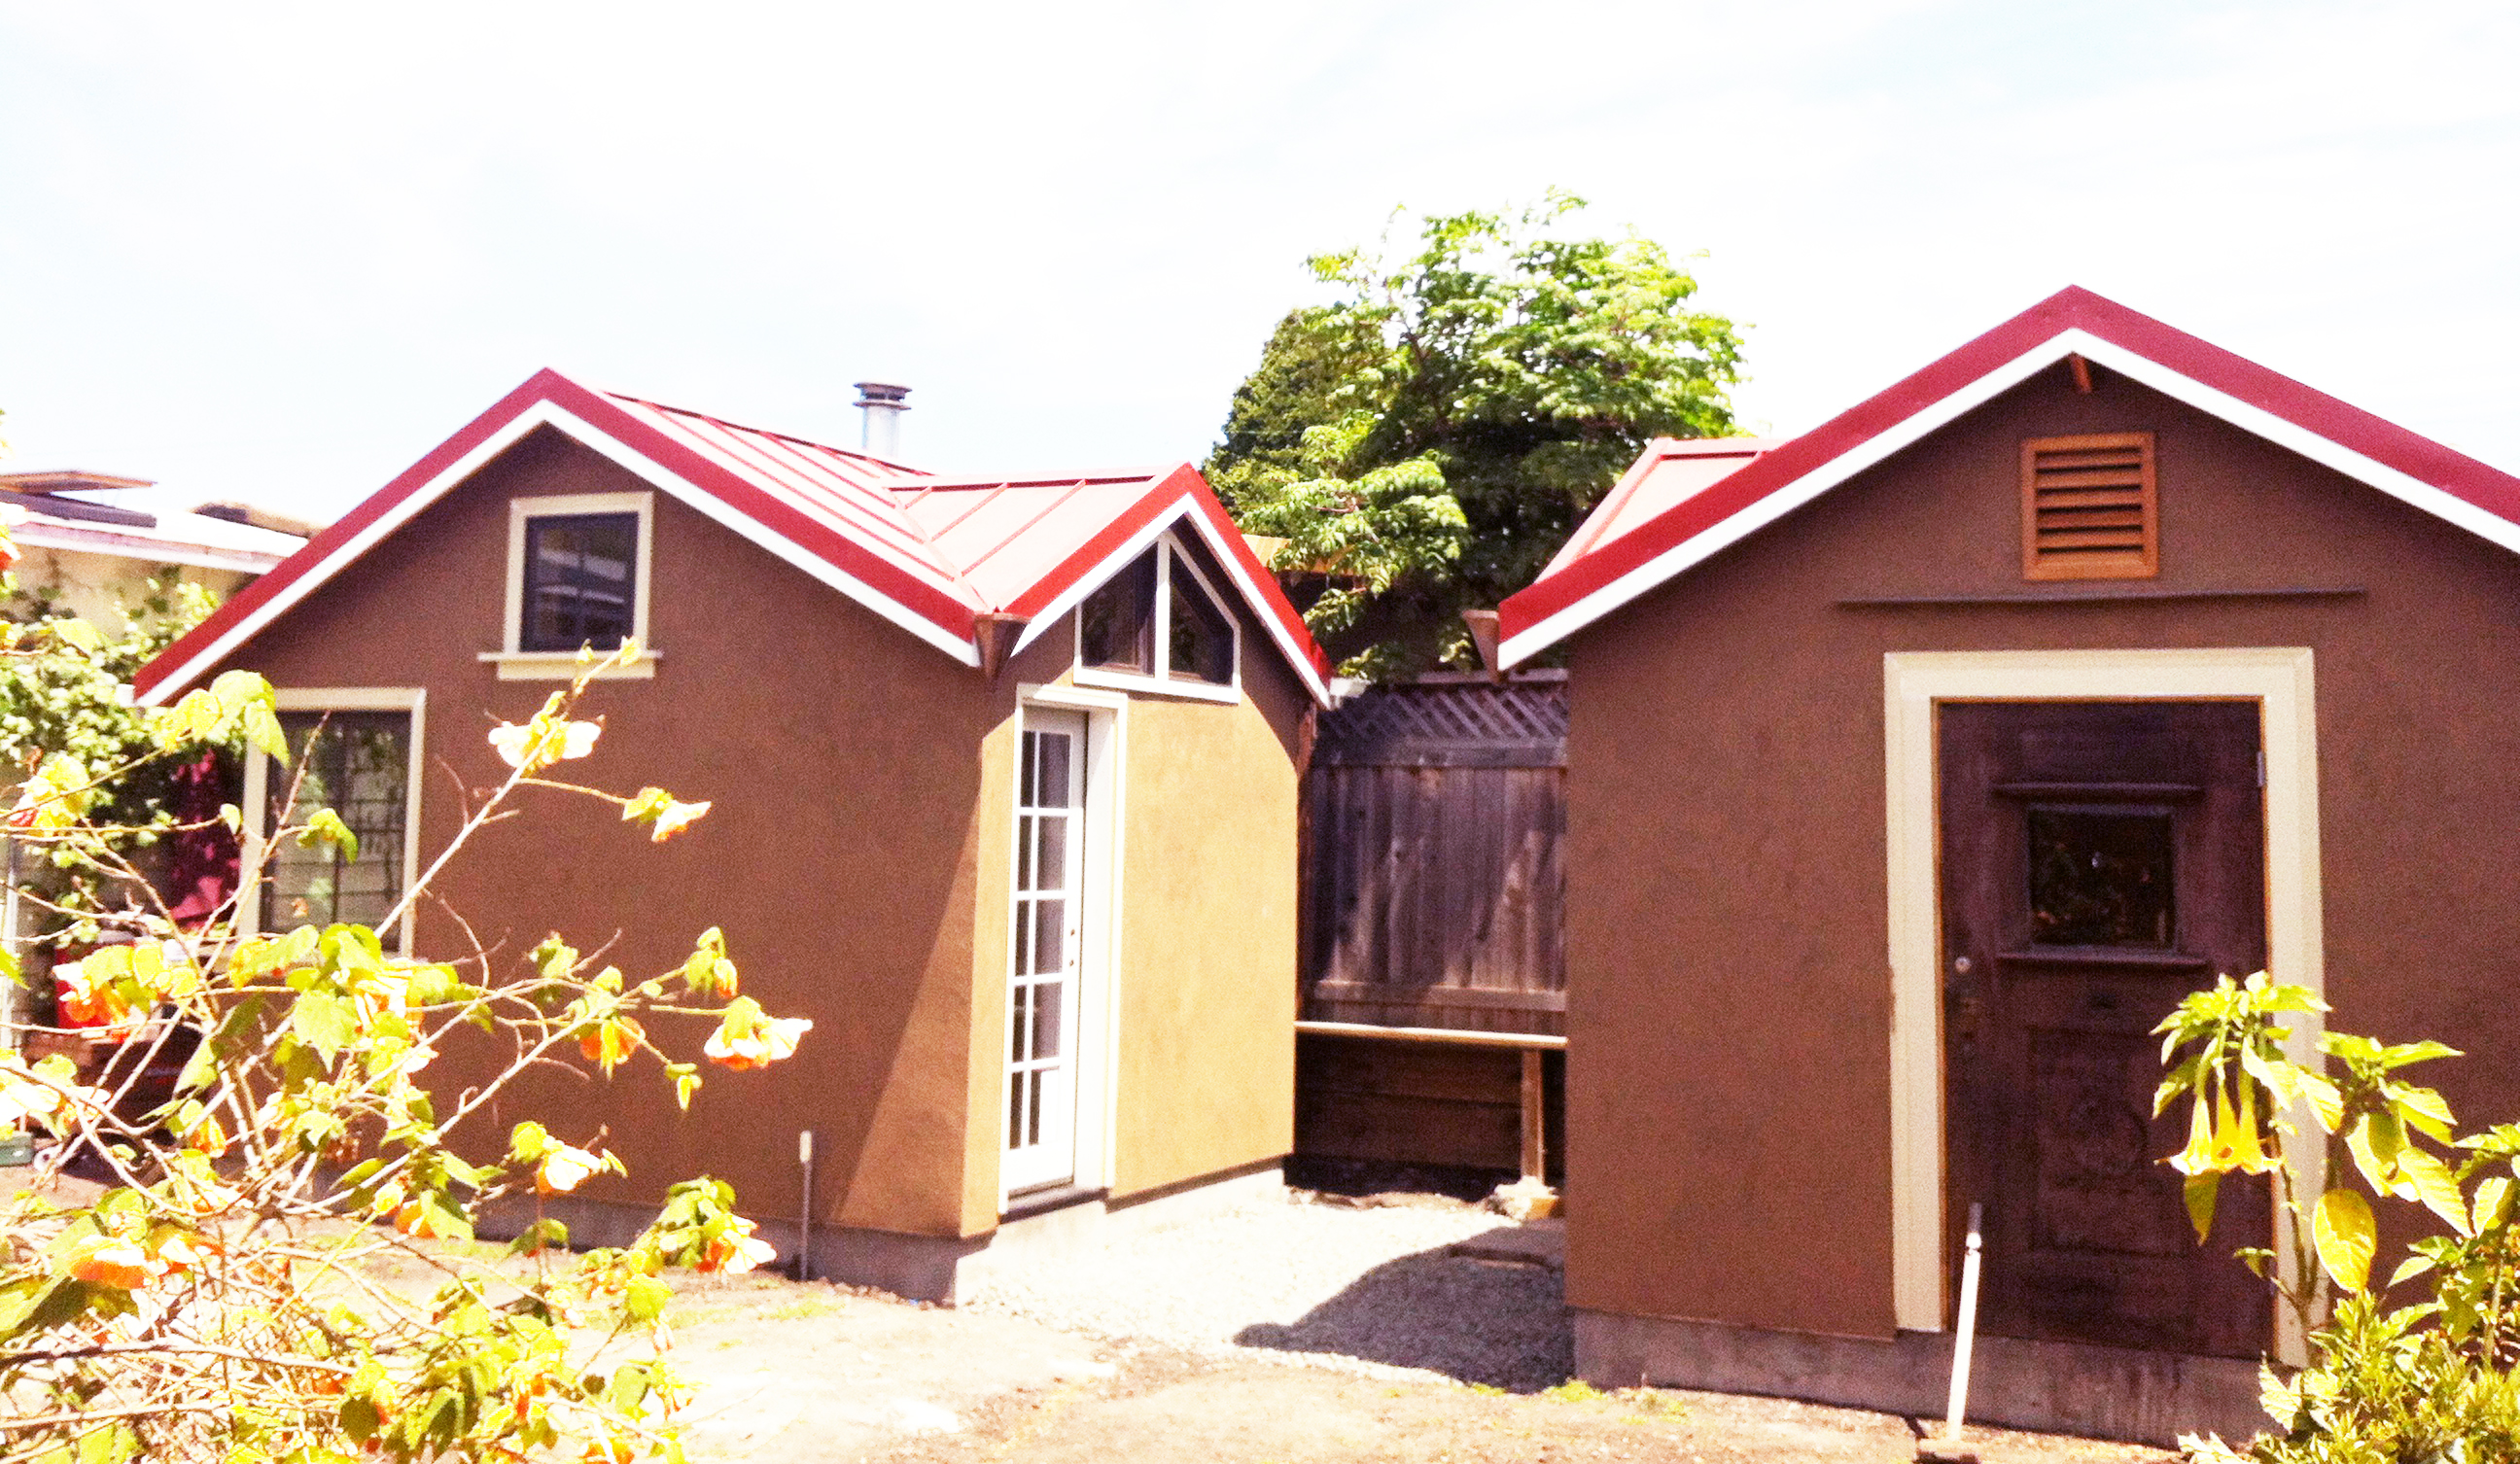 Red Metal Roofs And Warm Brown Stucco Deedsdesign